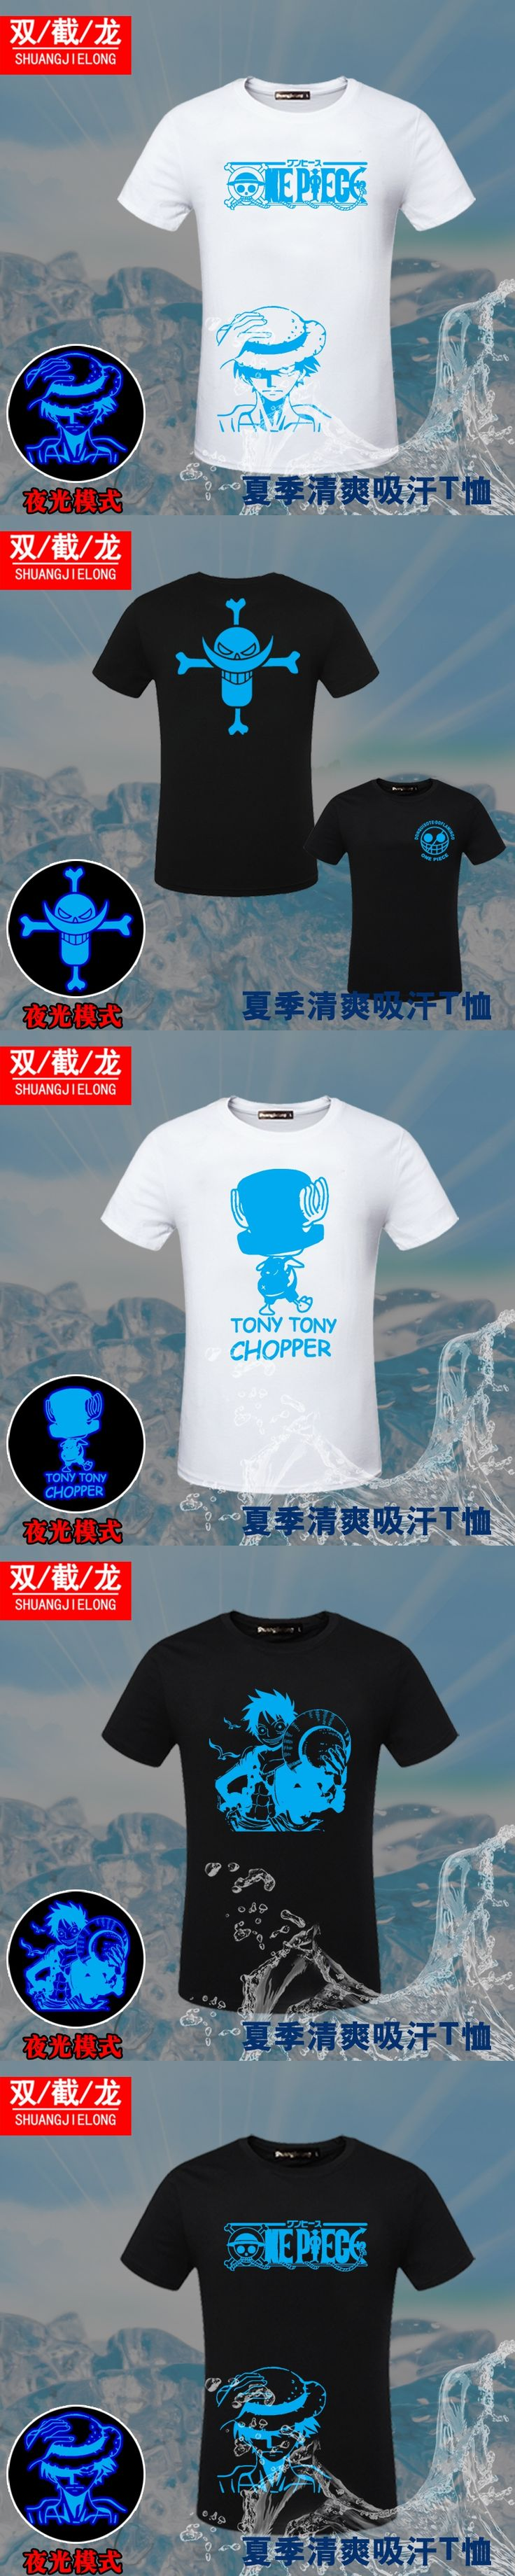 Hot Sell One Piece Men Summer Tops T shirt Fashion Cosplay Fluorescent t shirt tshirts Luffy Ace COS Tees Free Shipping